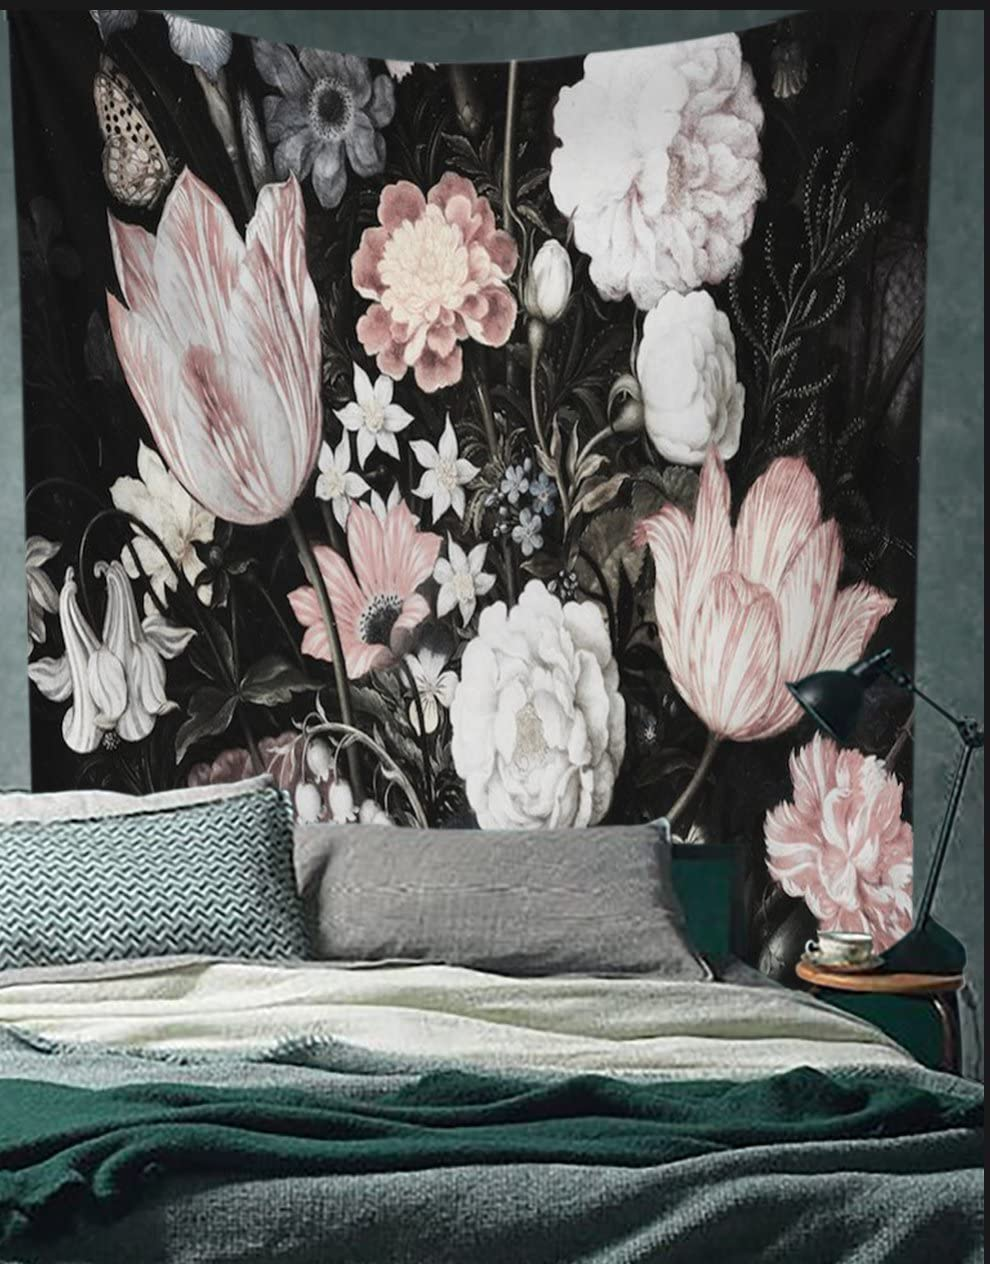 Amazon Com Black Blossoms Beautiful Flowers Wall Hanging Floral Tapestry Fabric Wallpaper Home Decor 60 X 81 Twin Size Floral Tapestry Home Kitchen